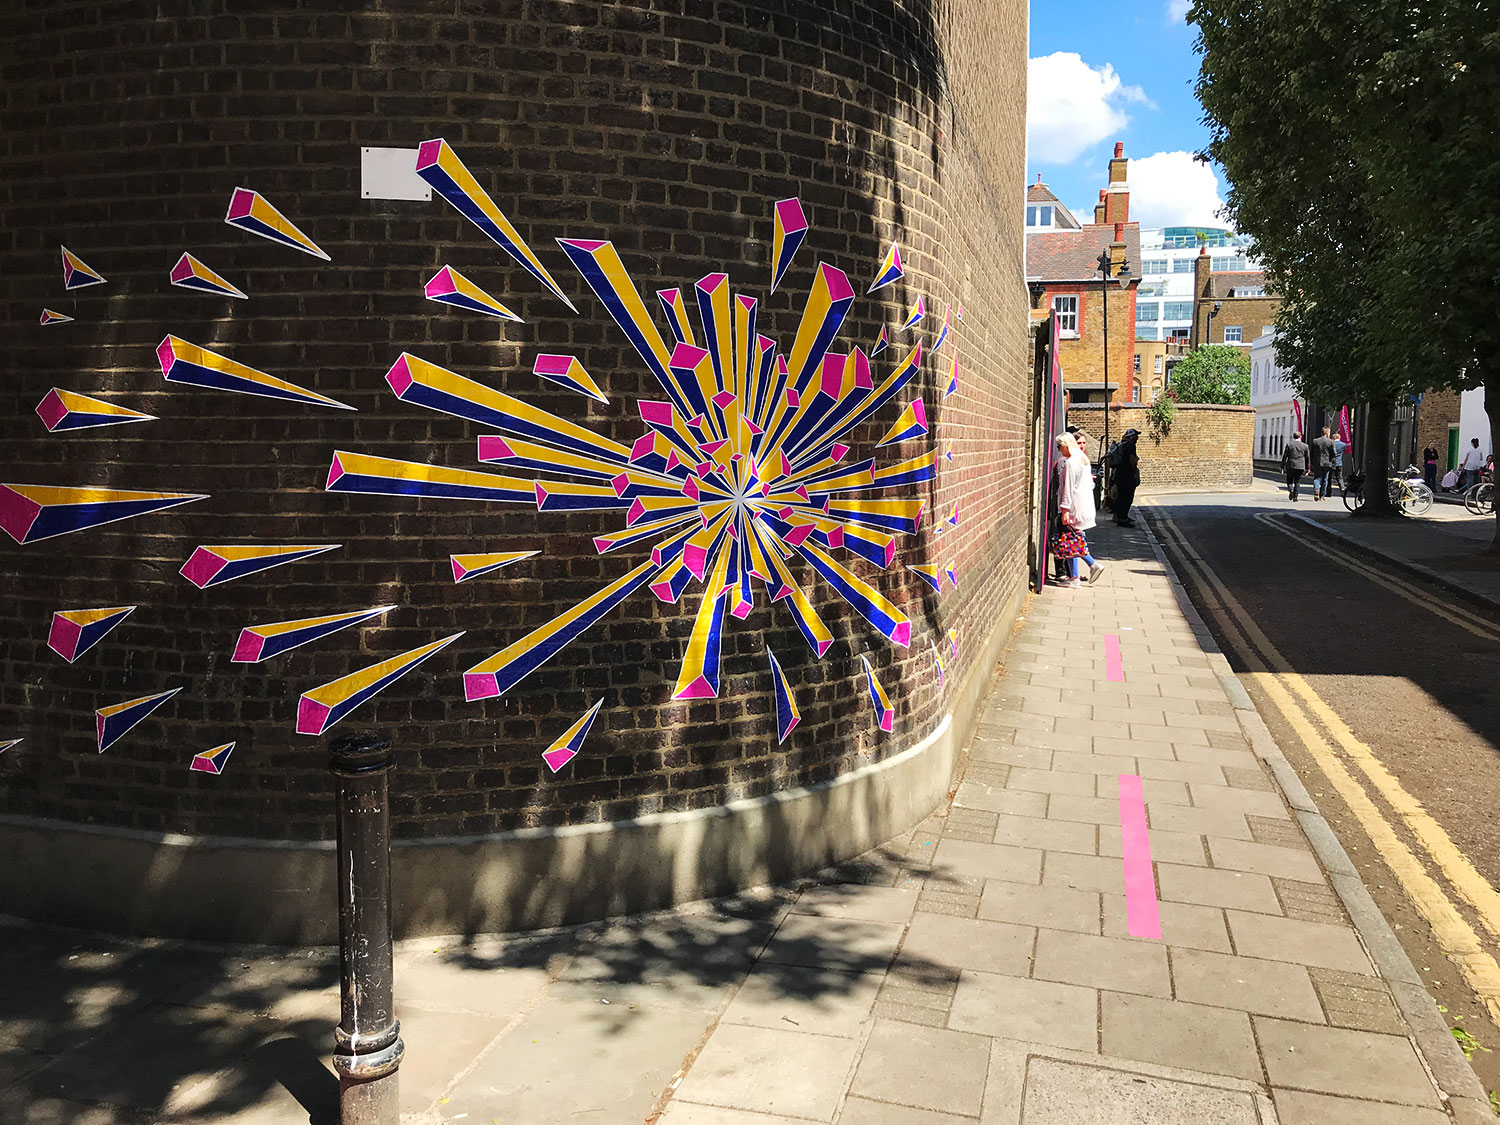 The ubiquitous bright pink markings guide you round Clerkenwell